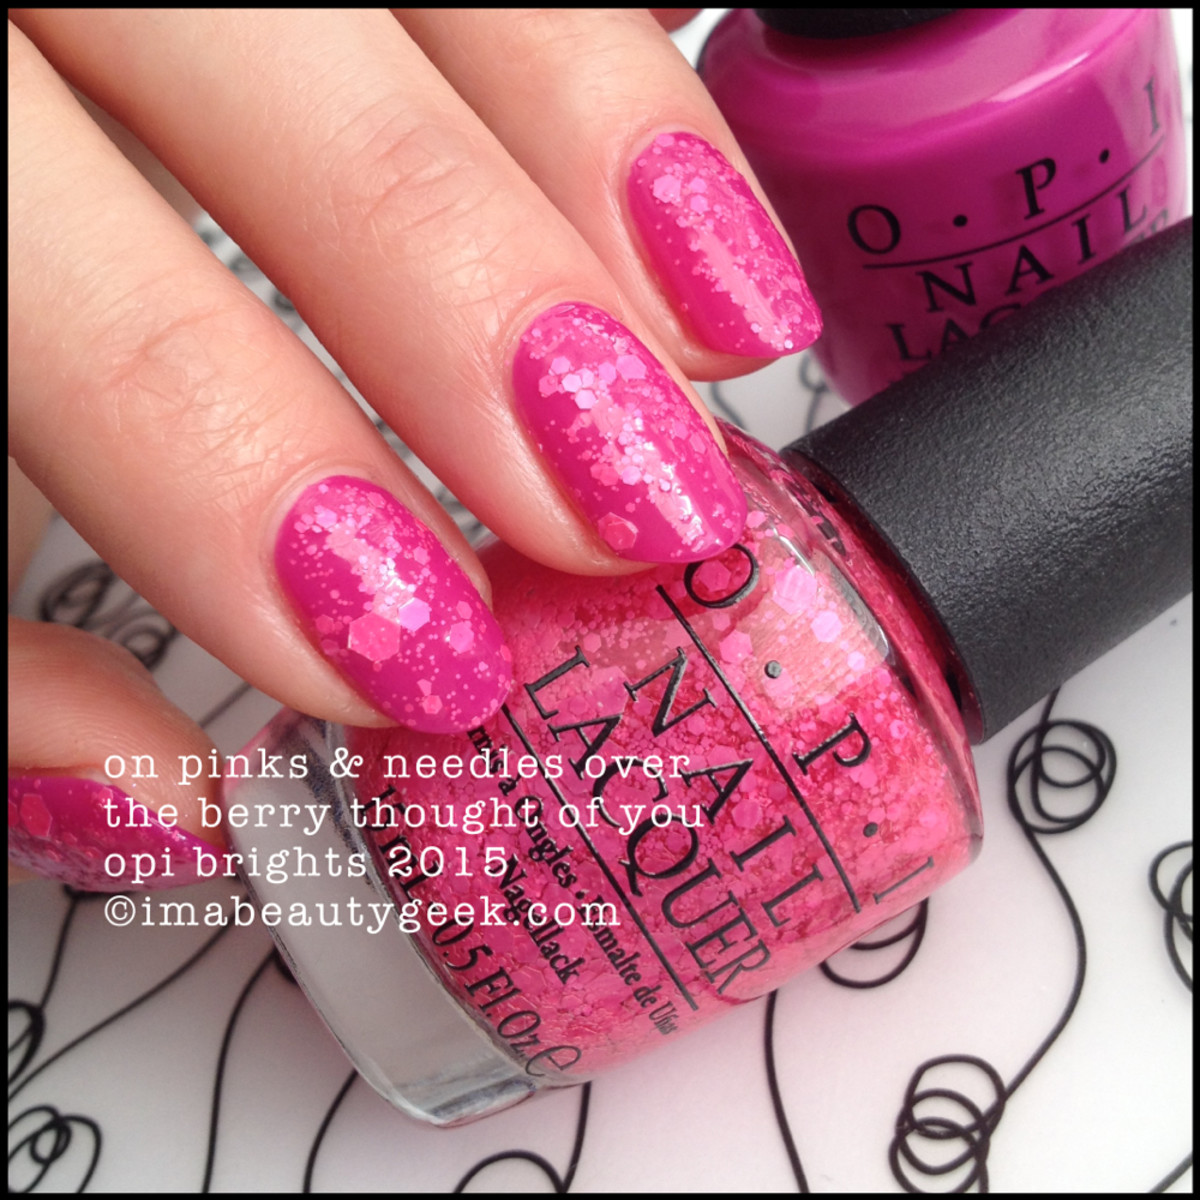 OPI Brights 2015_OPI On Pinks & Needles over OPI The Berry Thought of You